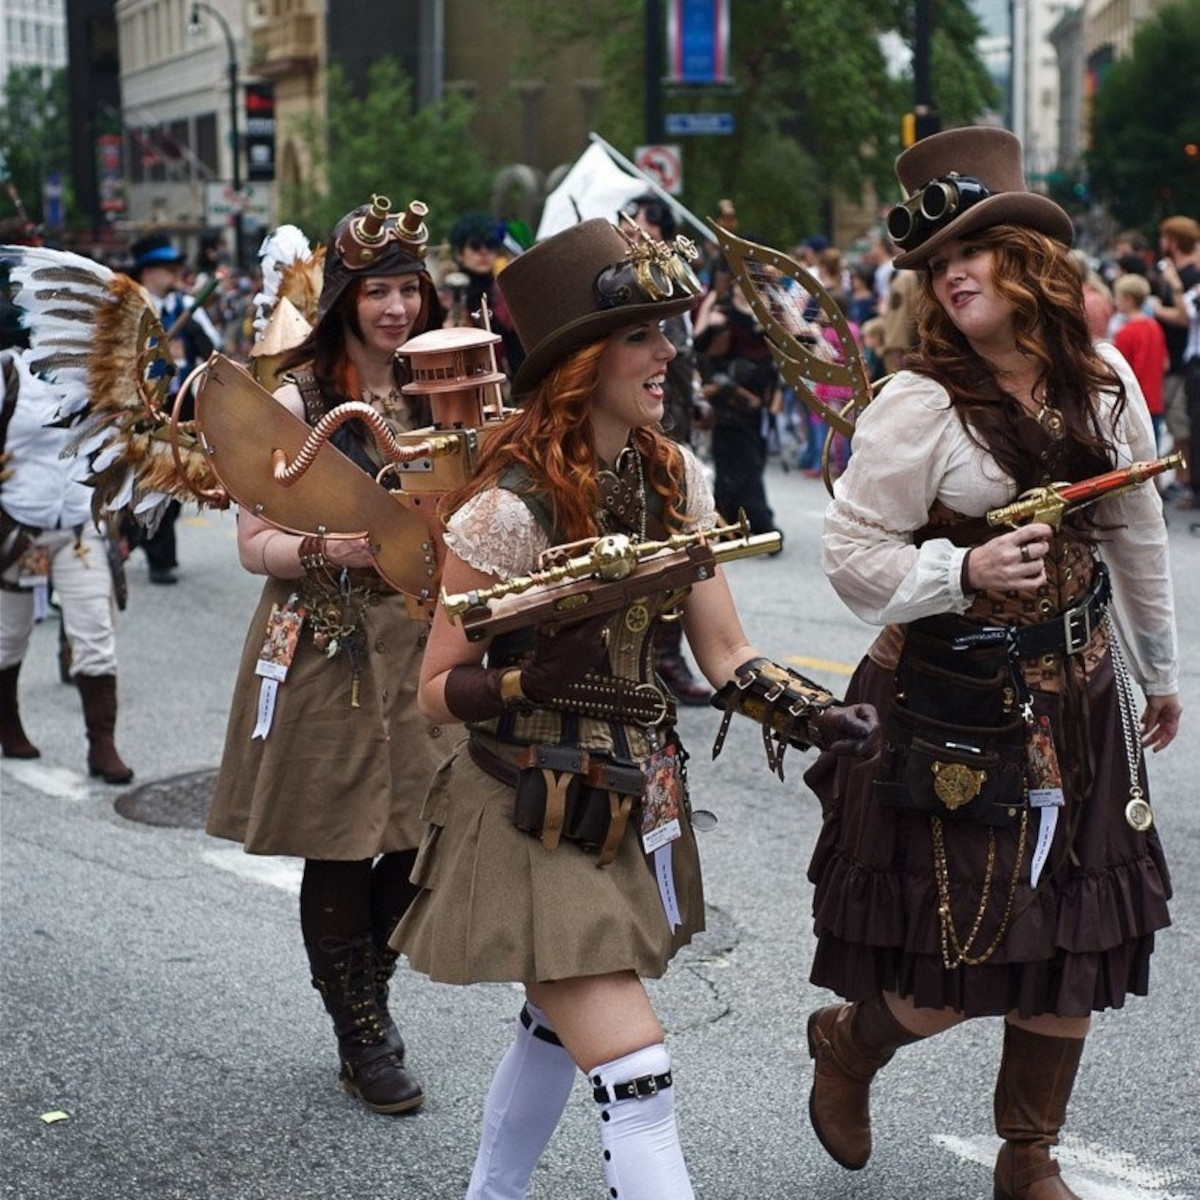 9 Amazing Steampunk Looks for Women From the Steampunk Conventions